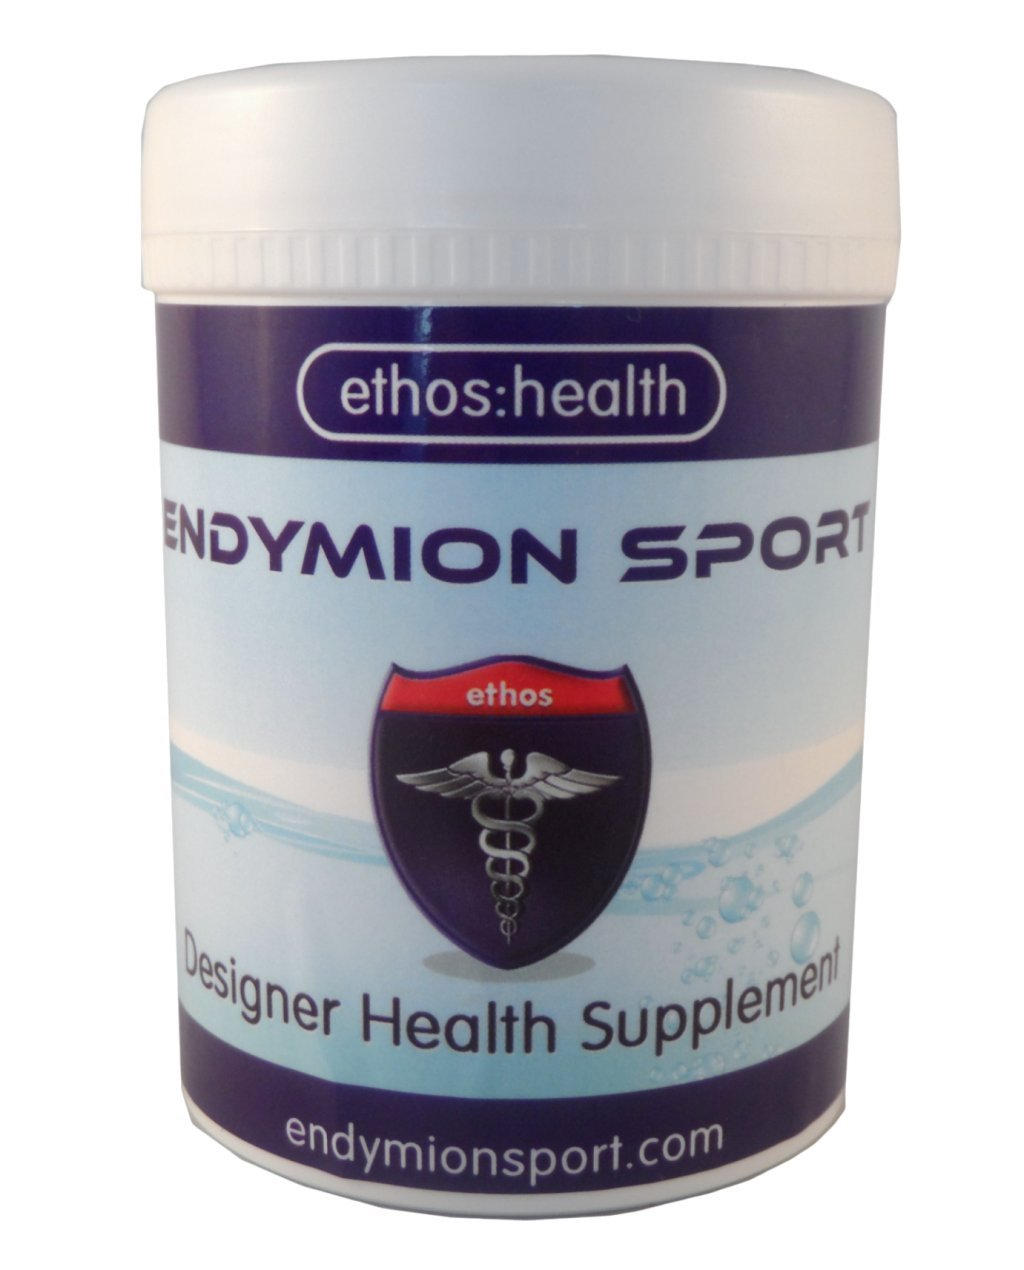 100% Pure Ethos Endymion Sport™ 60g Tub - Get the Edge and Reverse the Damage